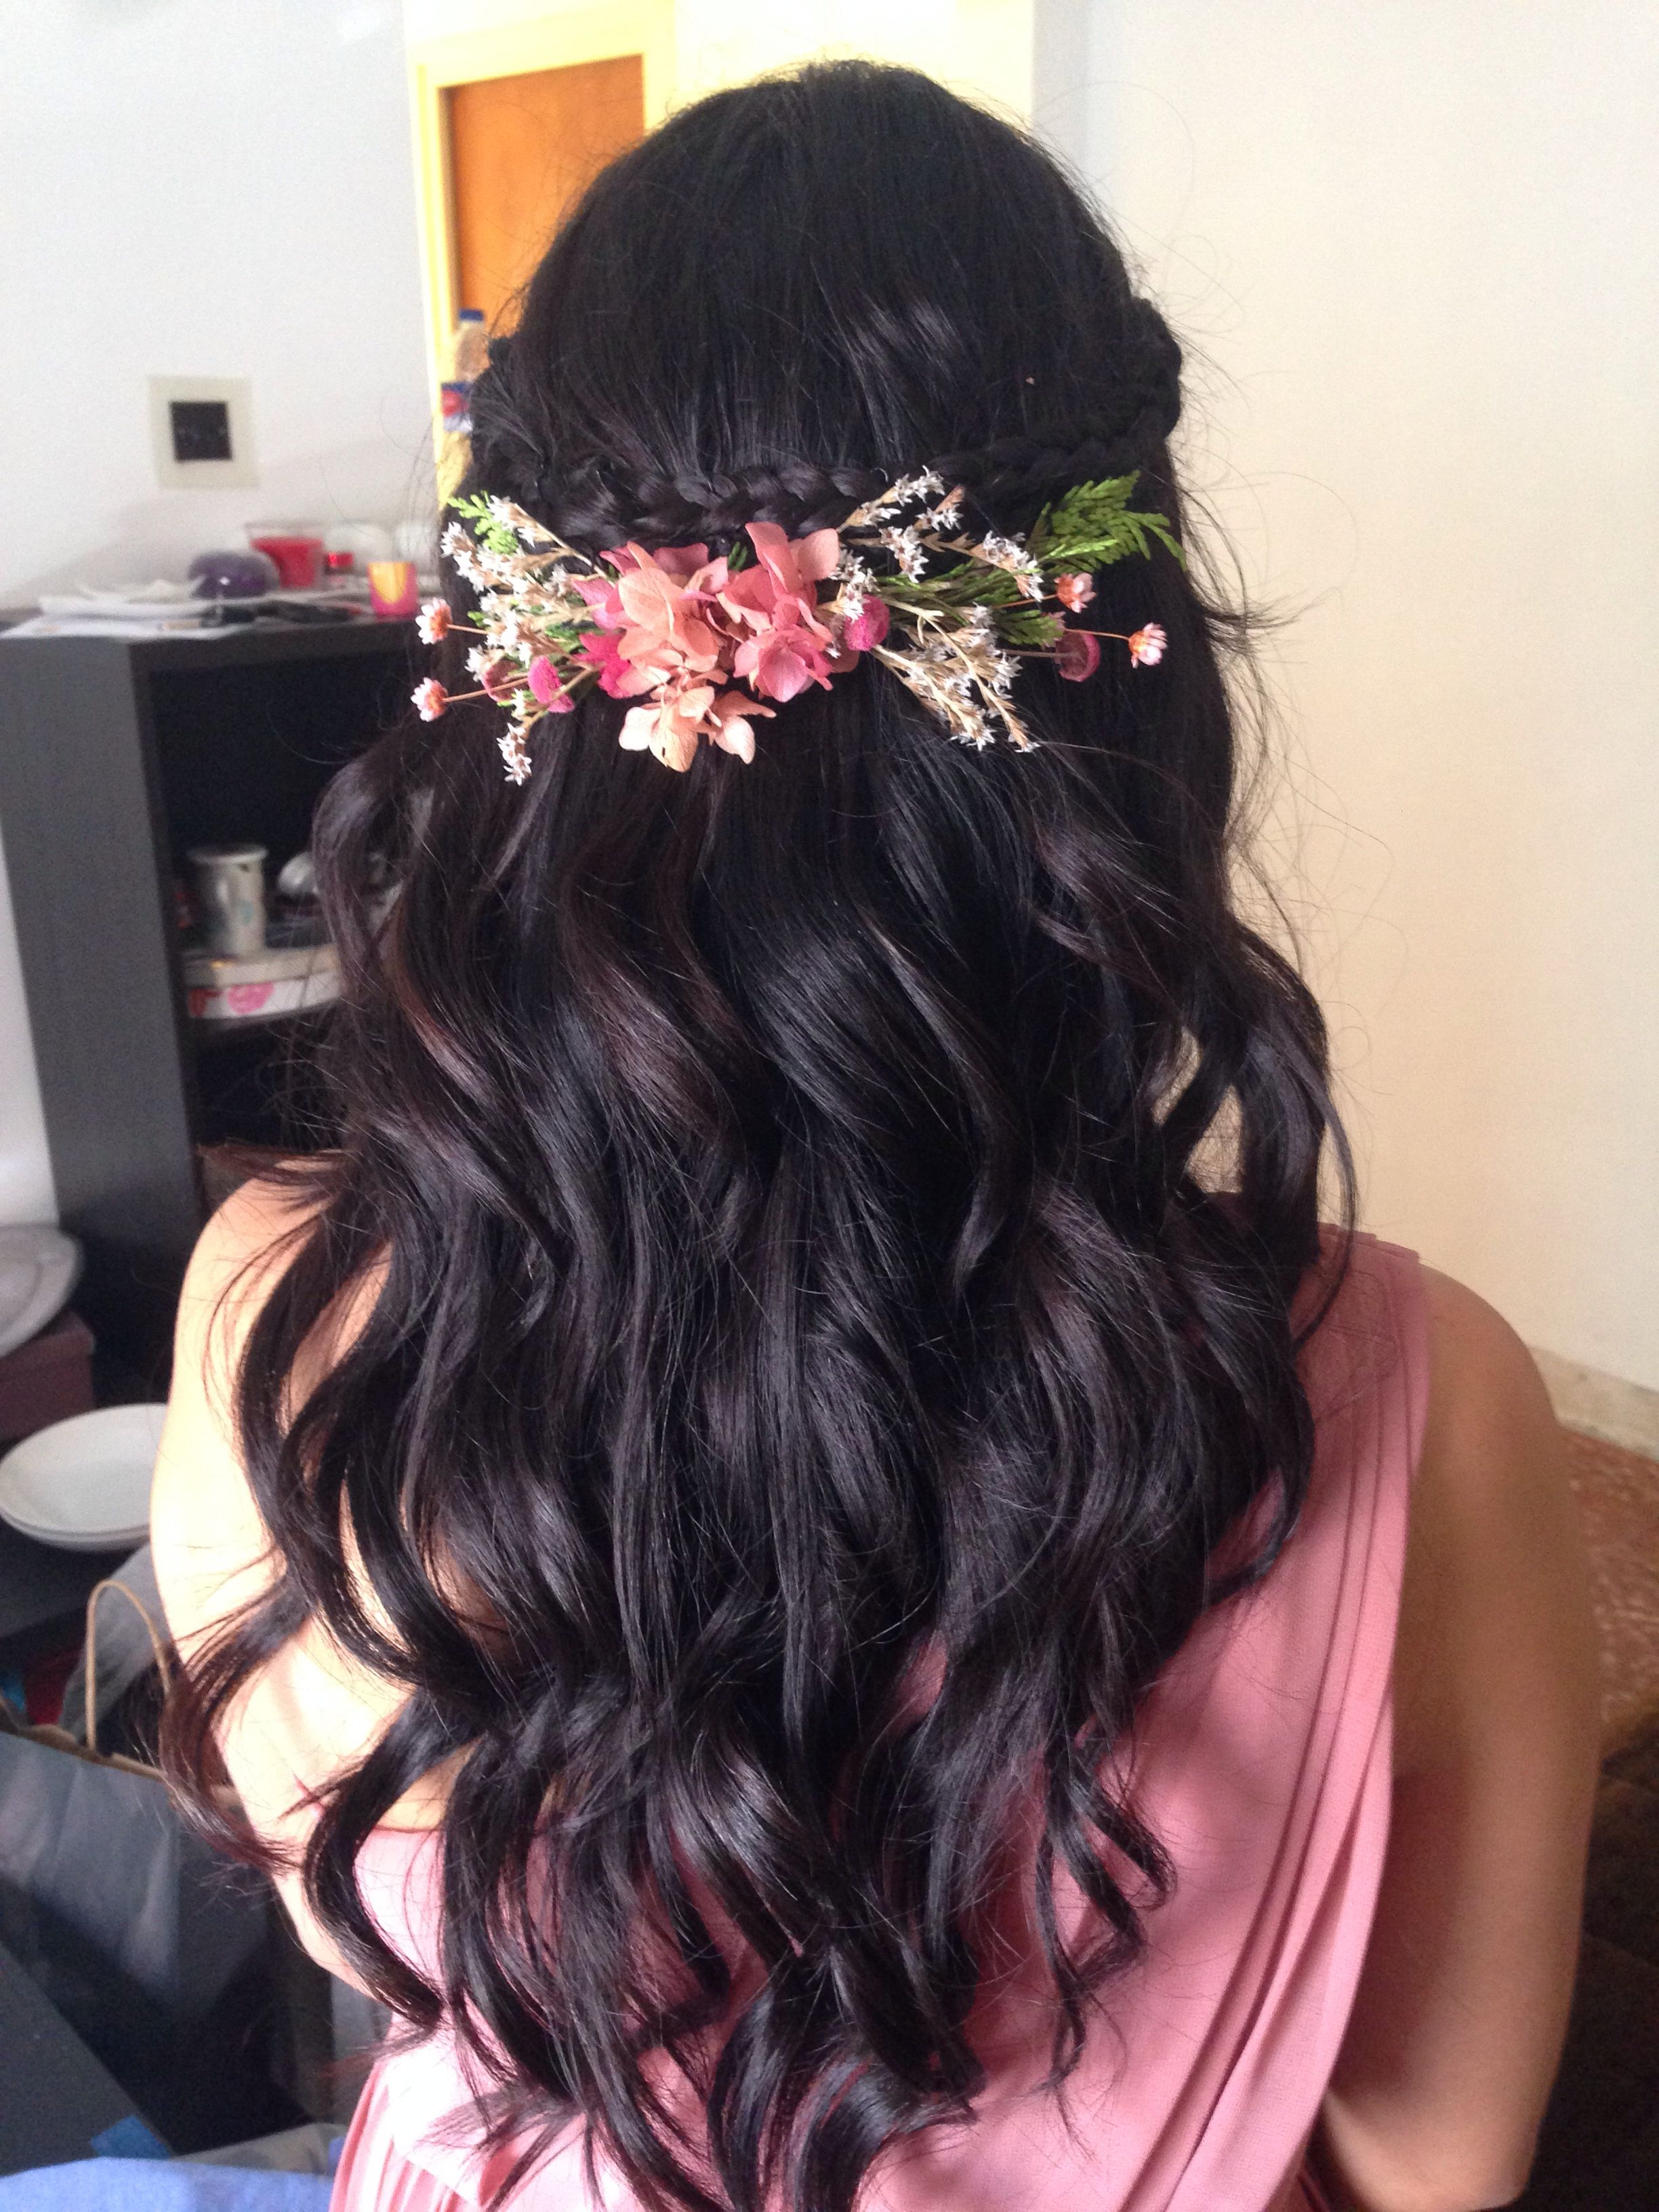 Curly Open Hair Adorned With Floral Hair Clip (View 3 of 20)